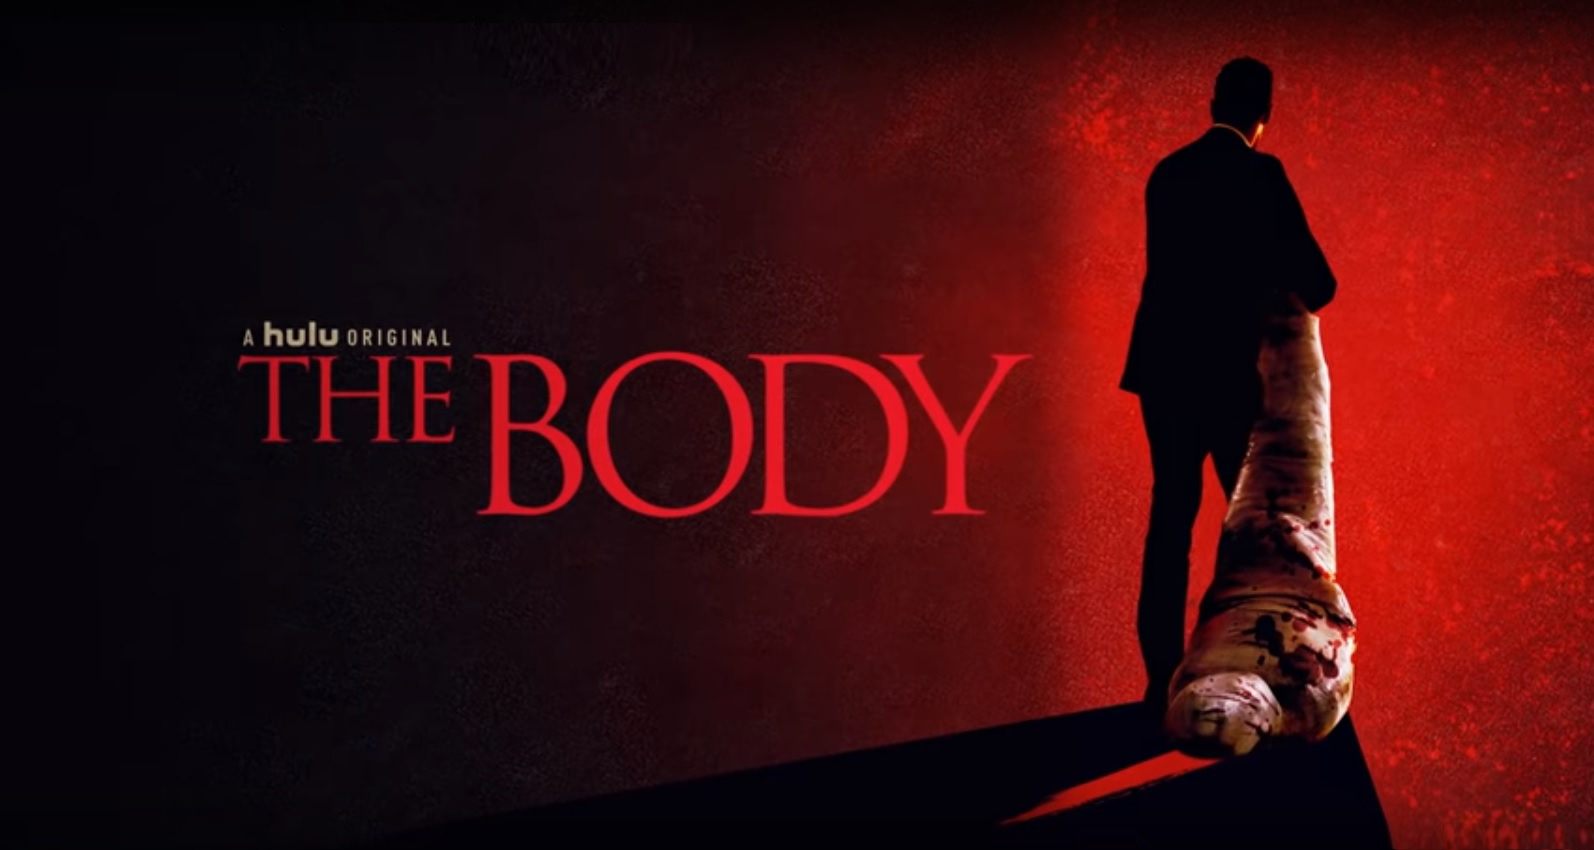 THE BODY title card